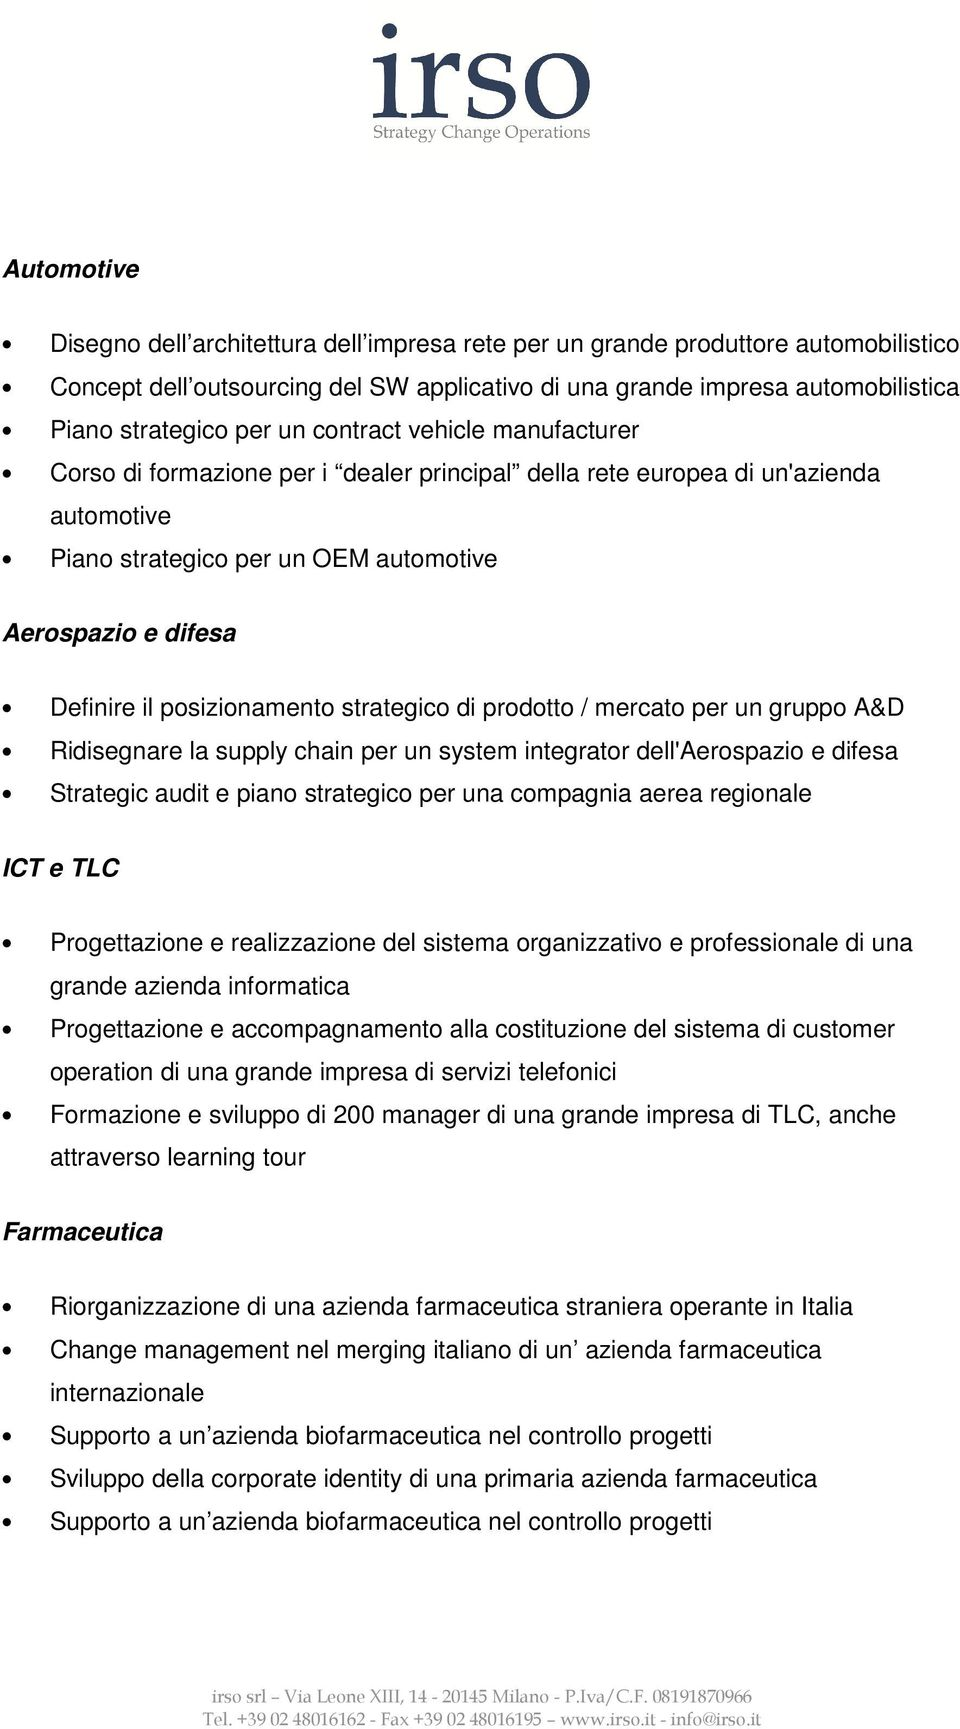 posizionamento strategico di prodotto / mercato per un gruppo A&D Ridisegnare la supply chain per un system integrator dell'aerospazio e difesa Strategic audit e piano strategico per una compagnia